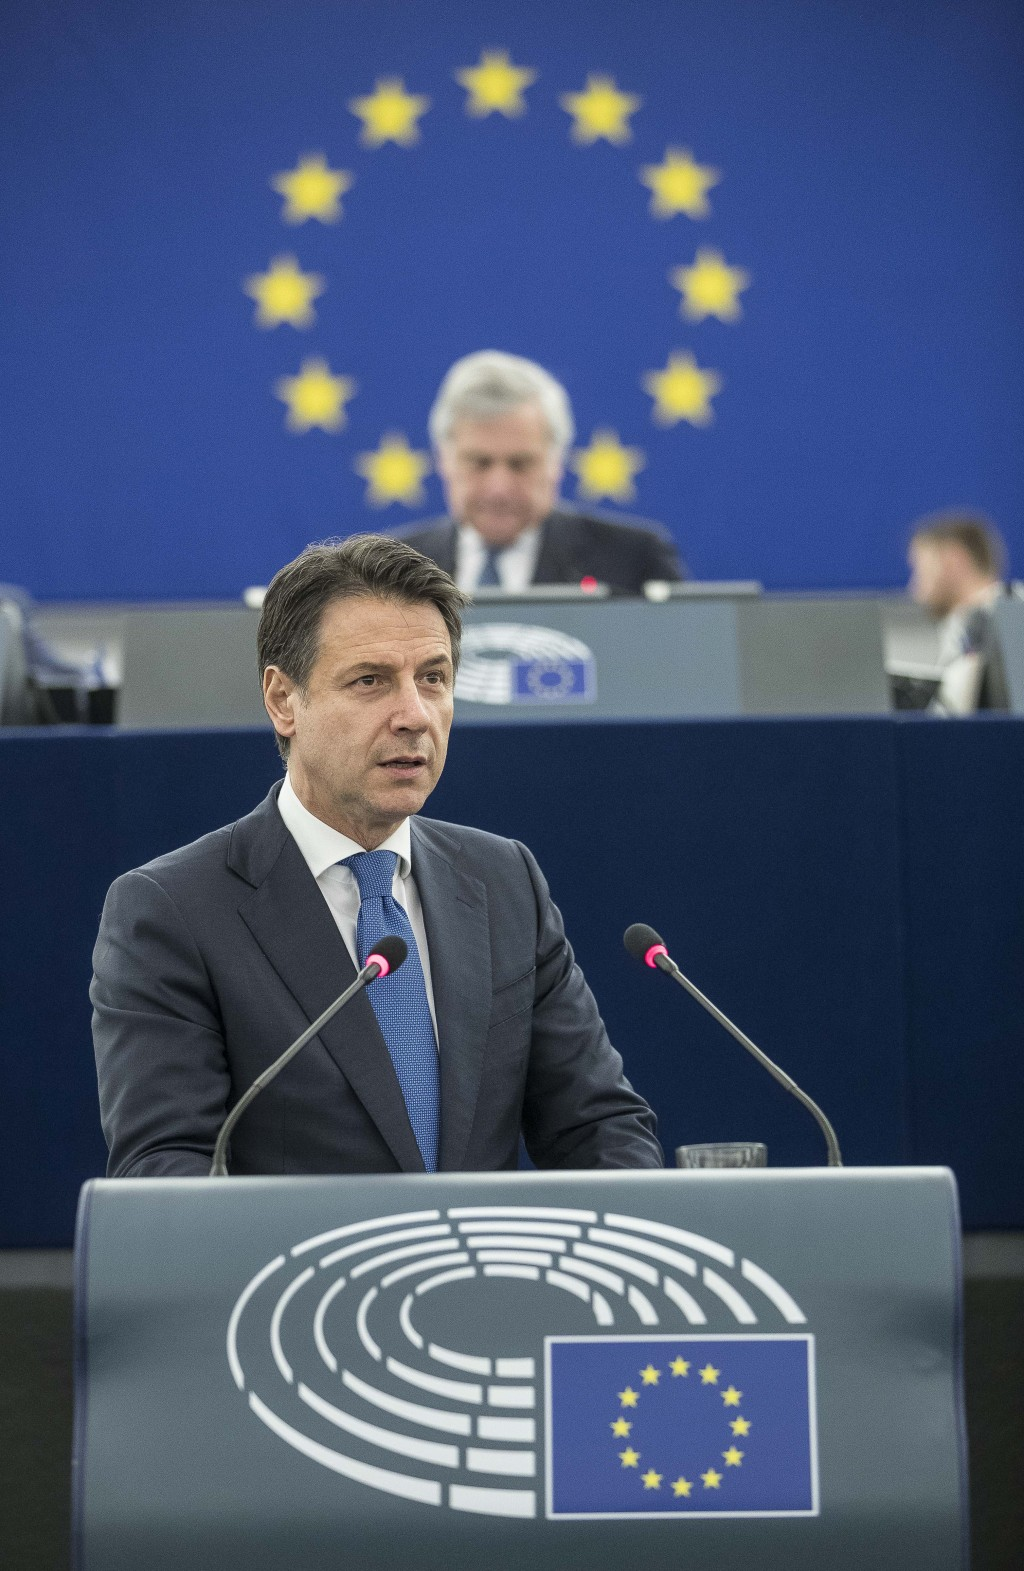 Italian Prime Minister Giuseppe Conte speaks during a debate on the future Europe at the European Parliament in Strasbourg, eastern France, Tuesday Fe...